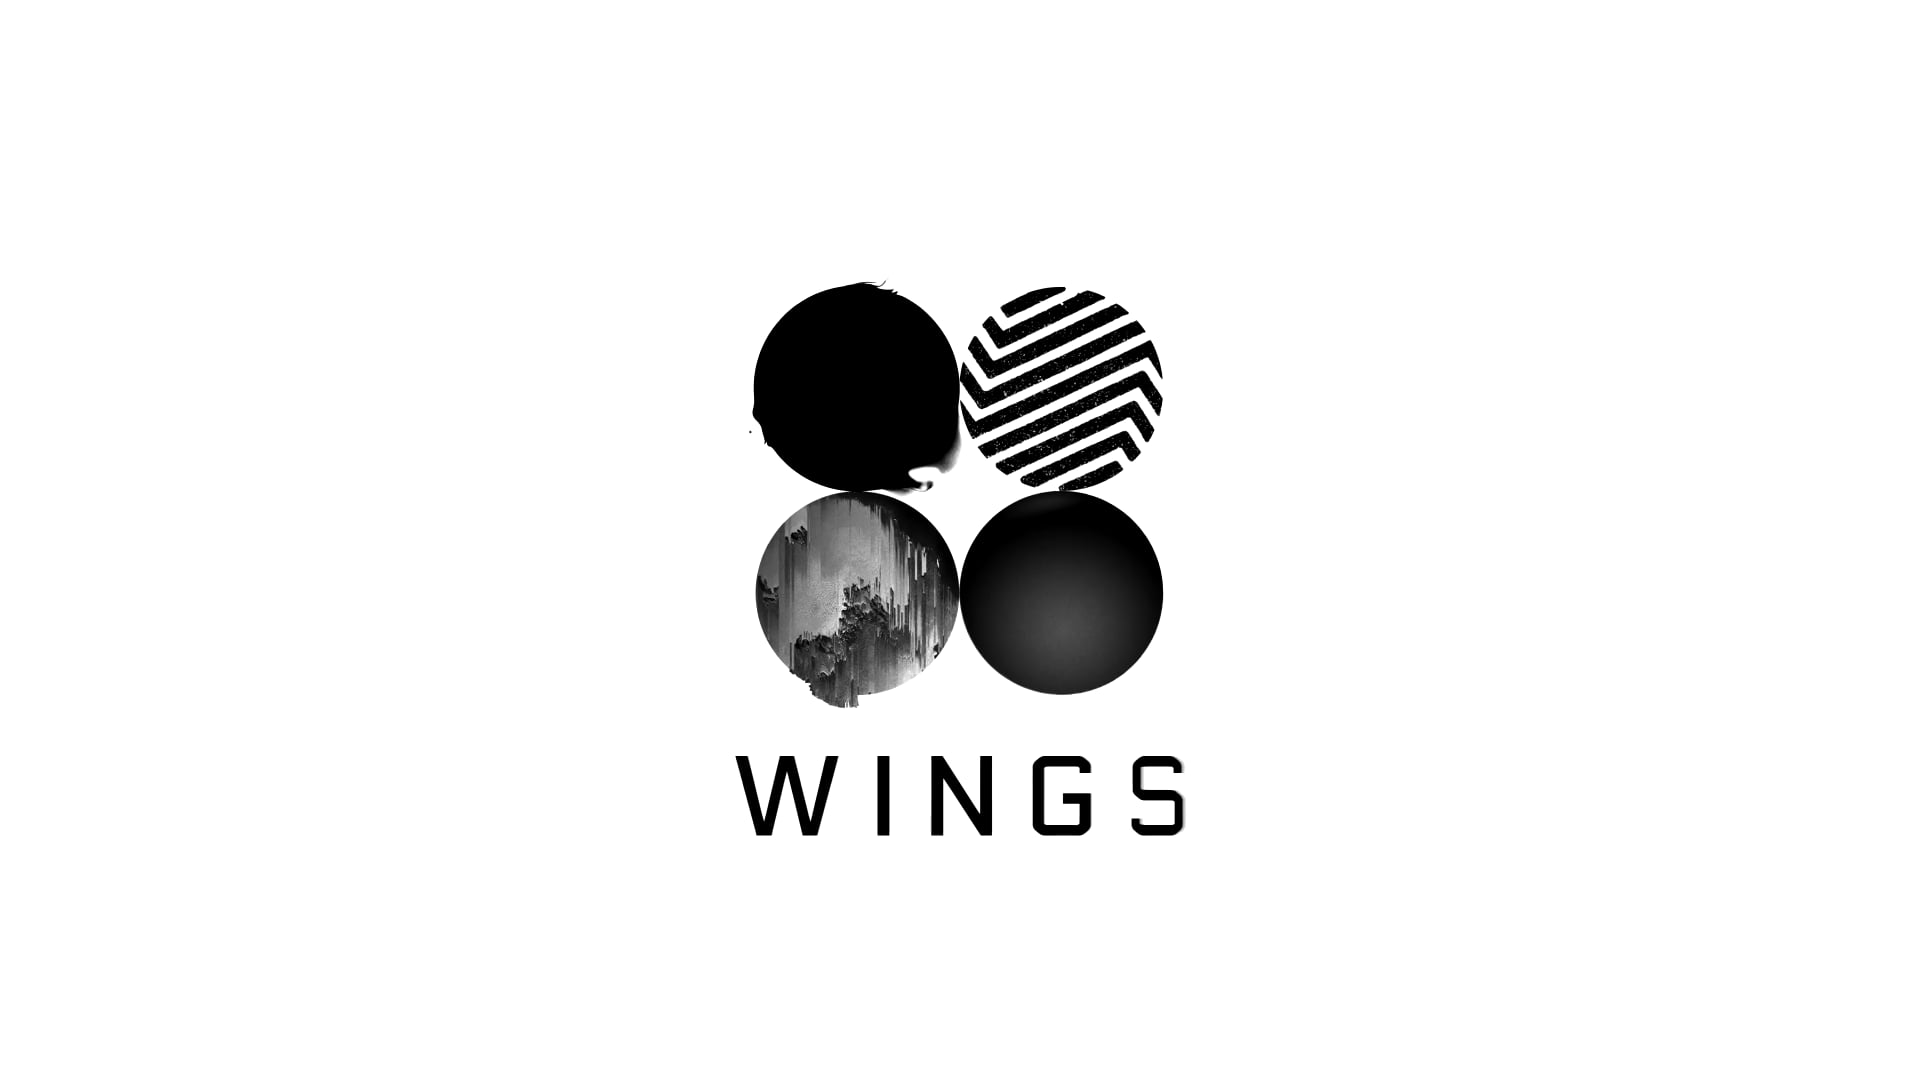 bts wings era